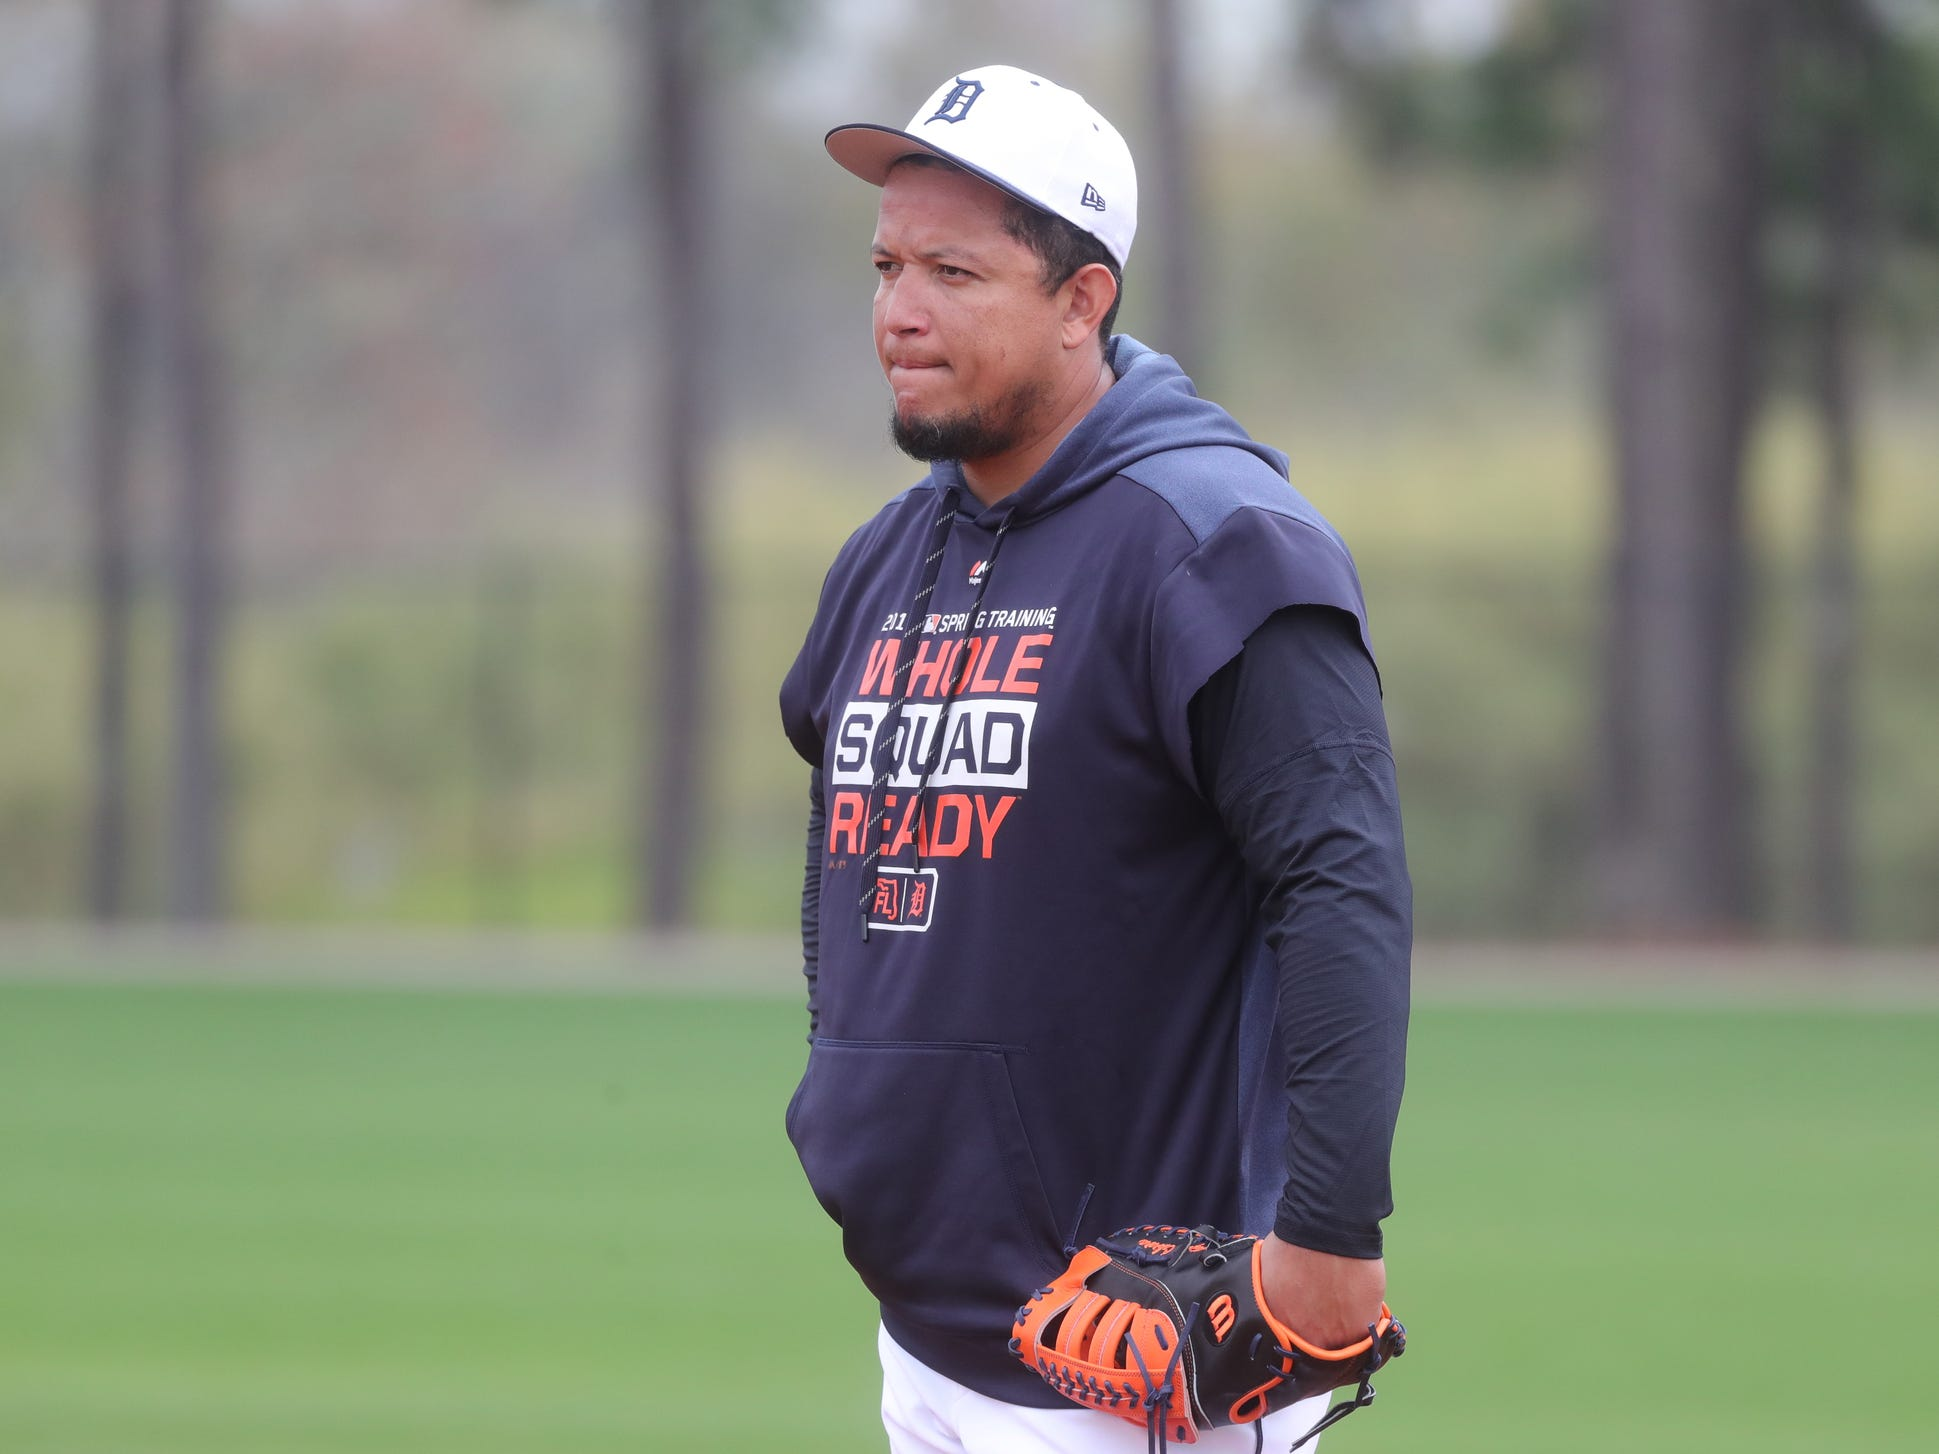 Detroit Tigers infielder Miguel Cabrera at first base during practice Monday, Feb. 18, 2019 at Publix Field at Joker Marchant Stadium in Lakeland, Fla.